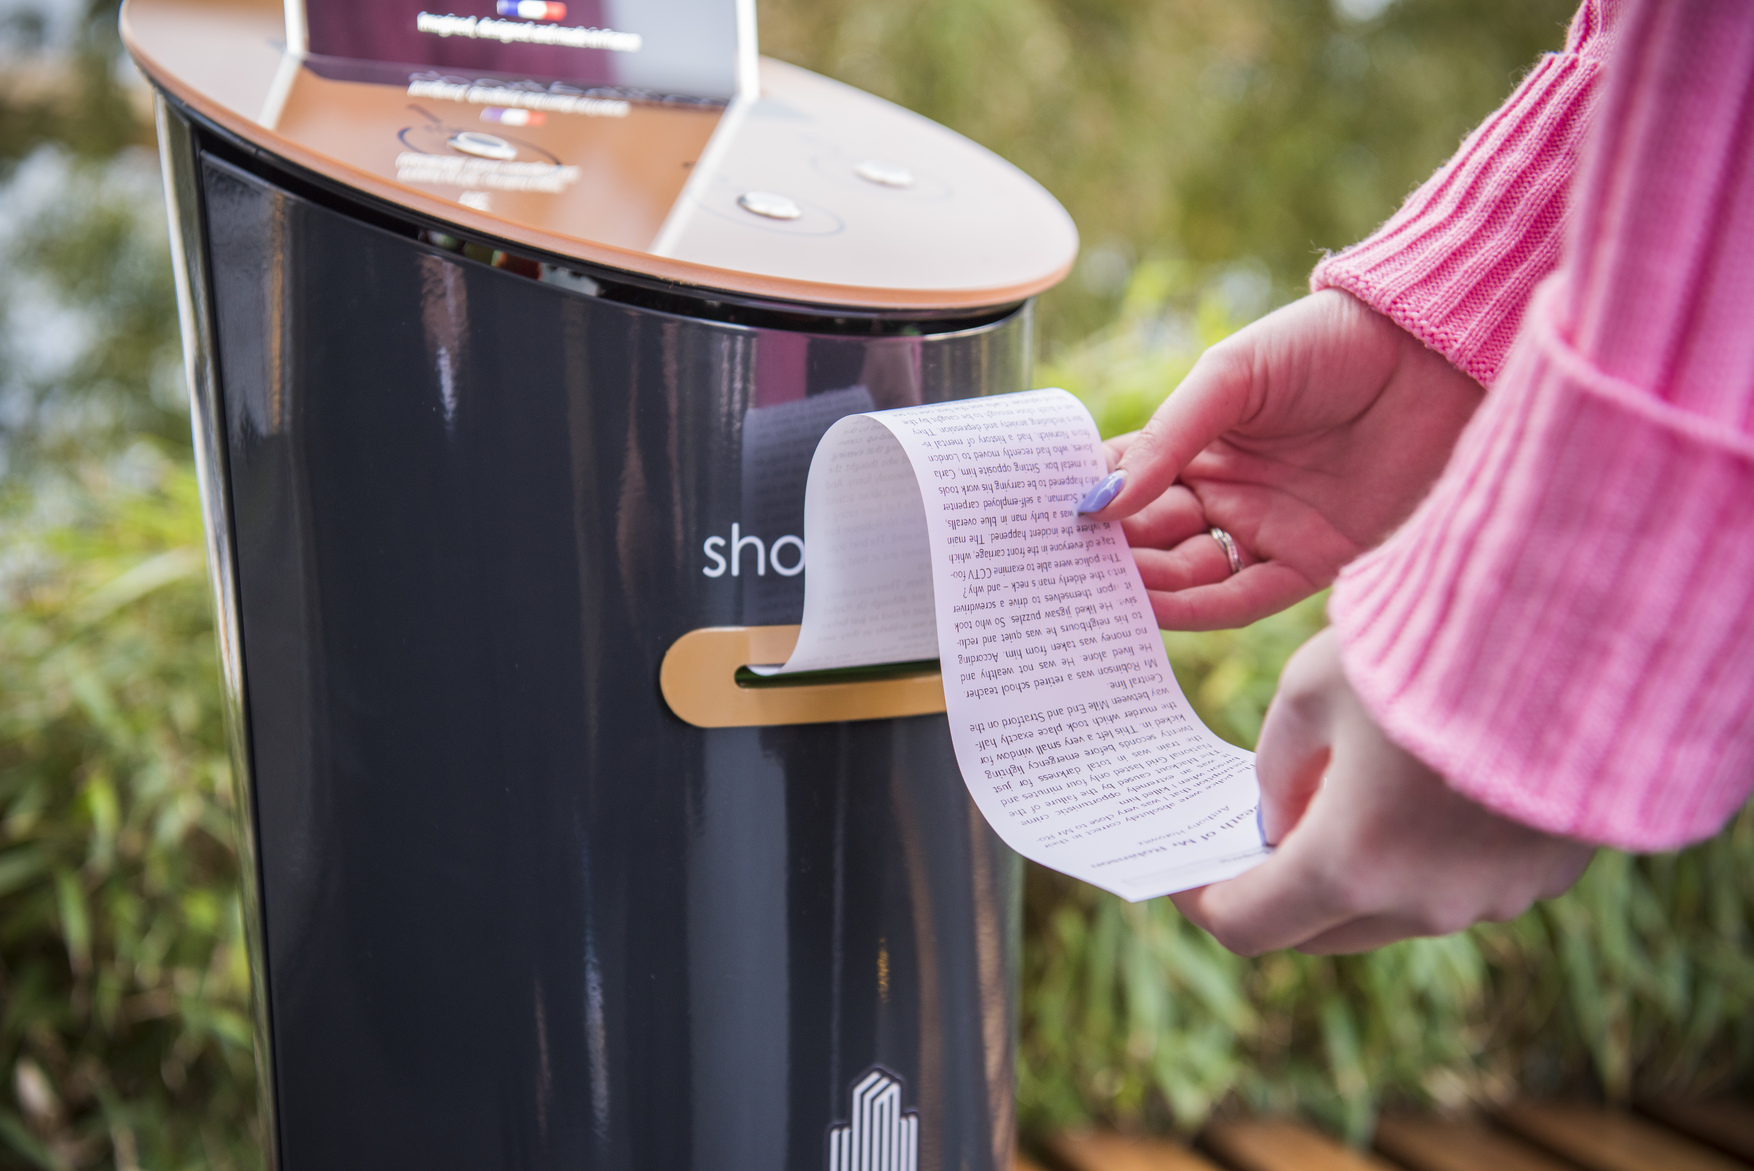 A woman uses a short story vending machine at Canary Wharf